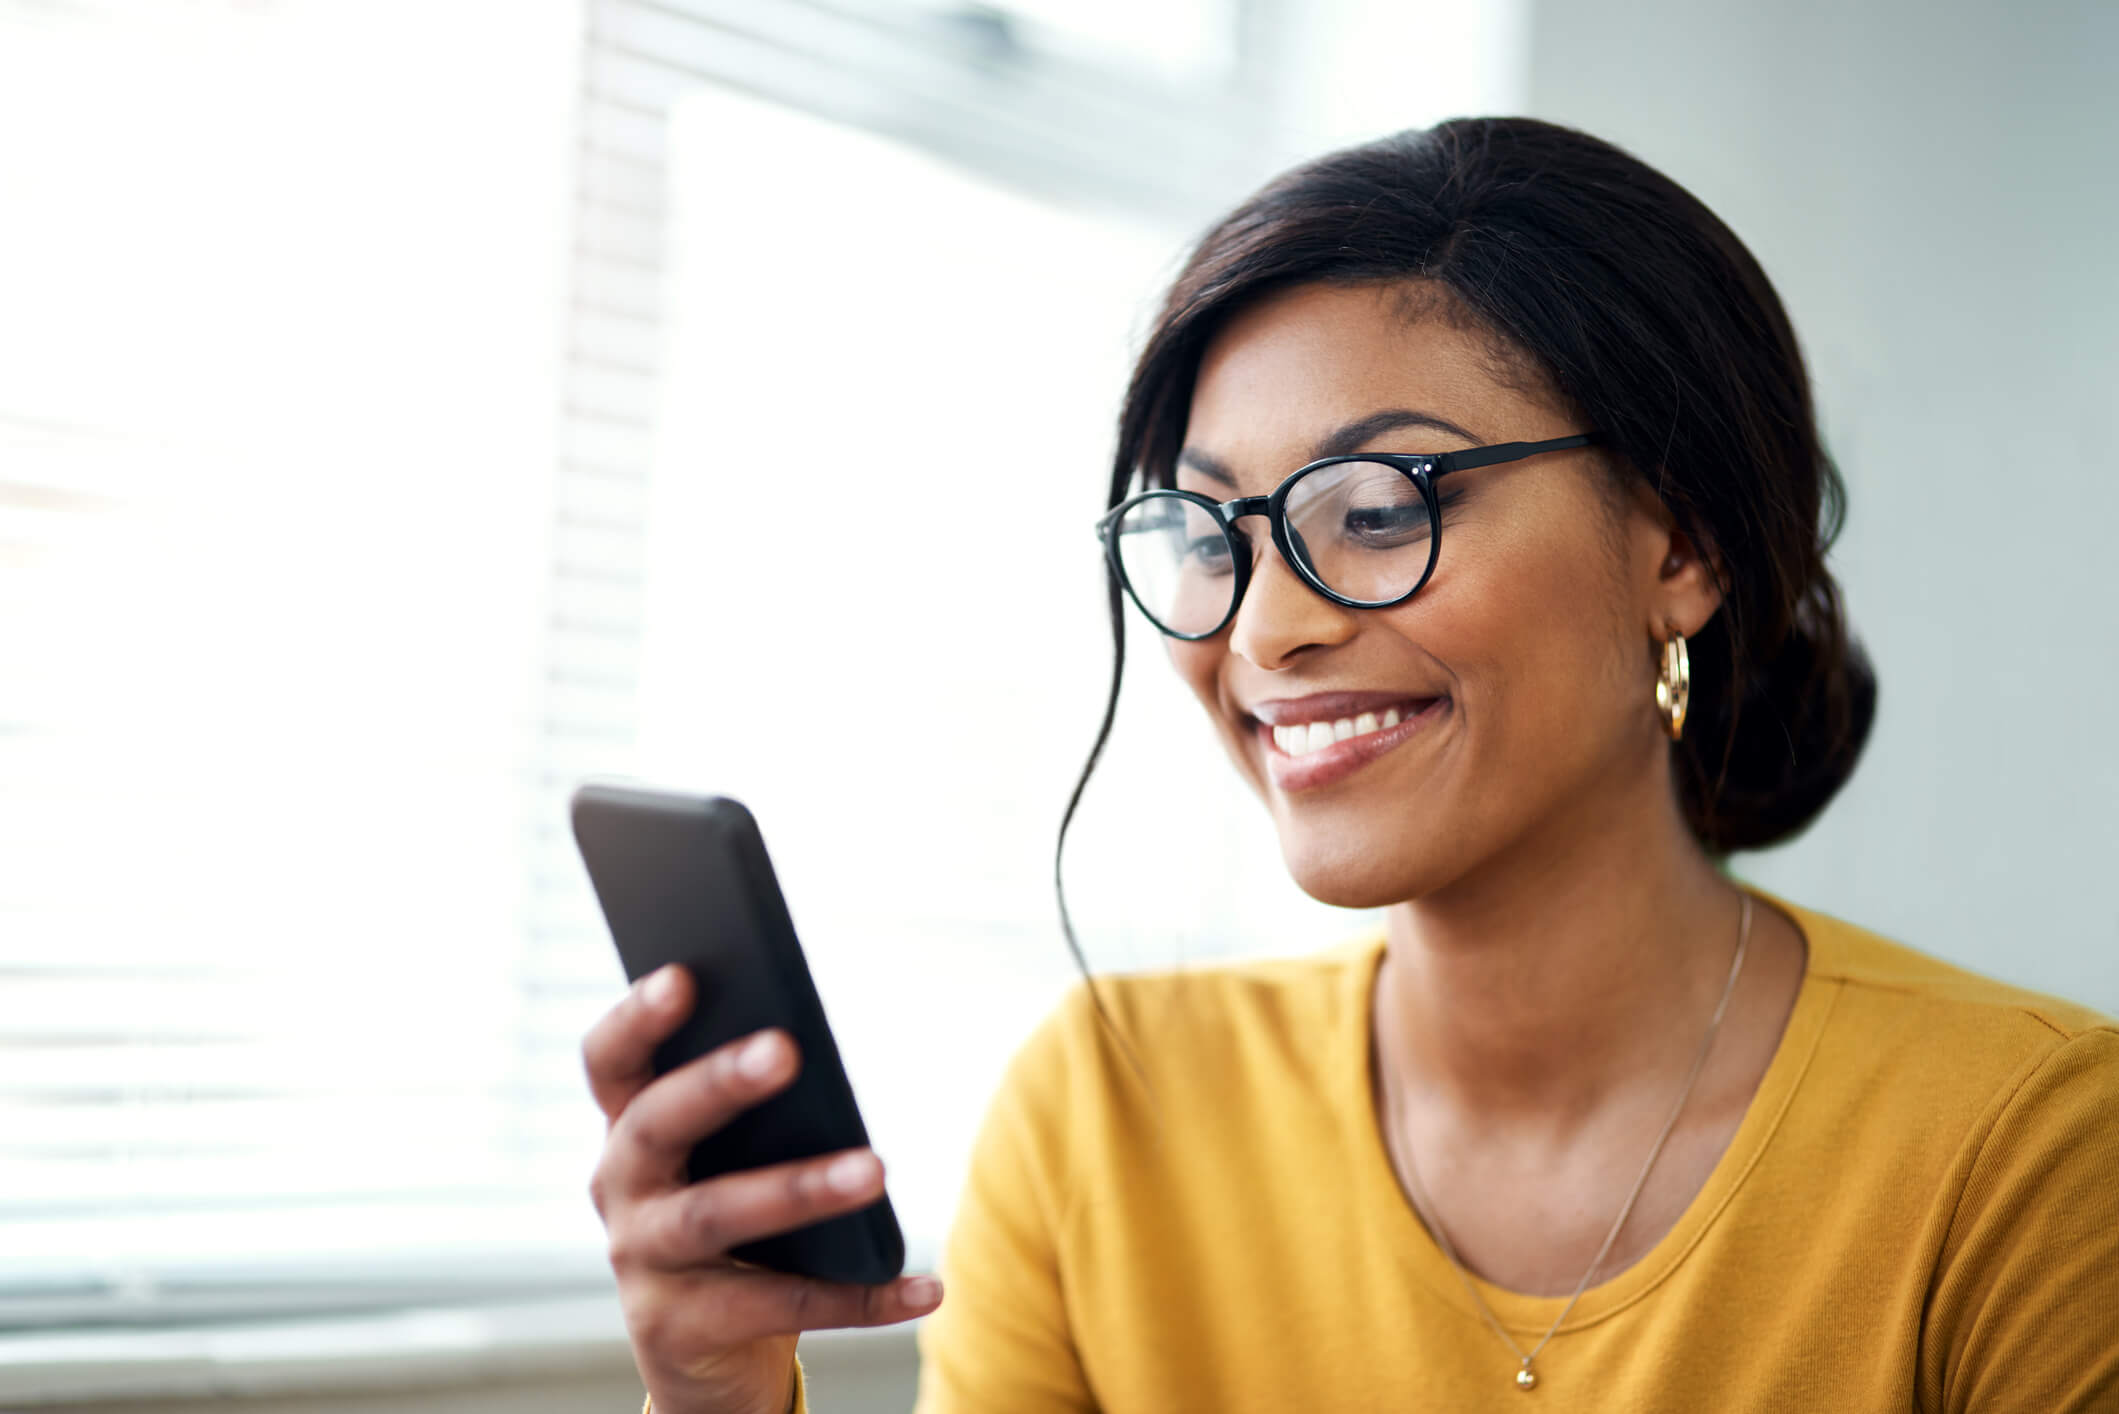 Woman Using a Phone with Glasses